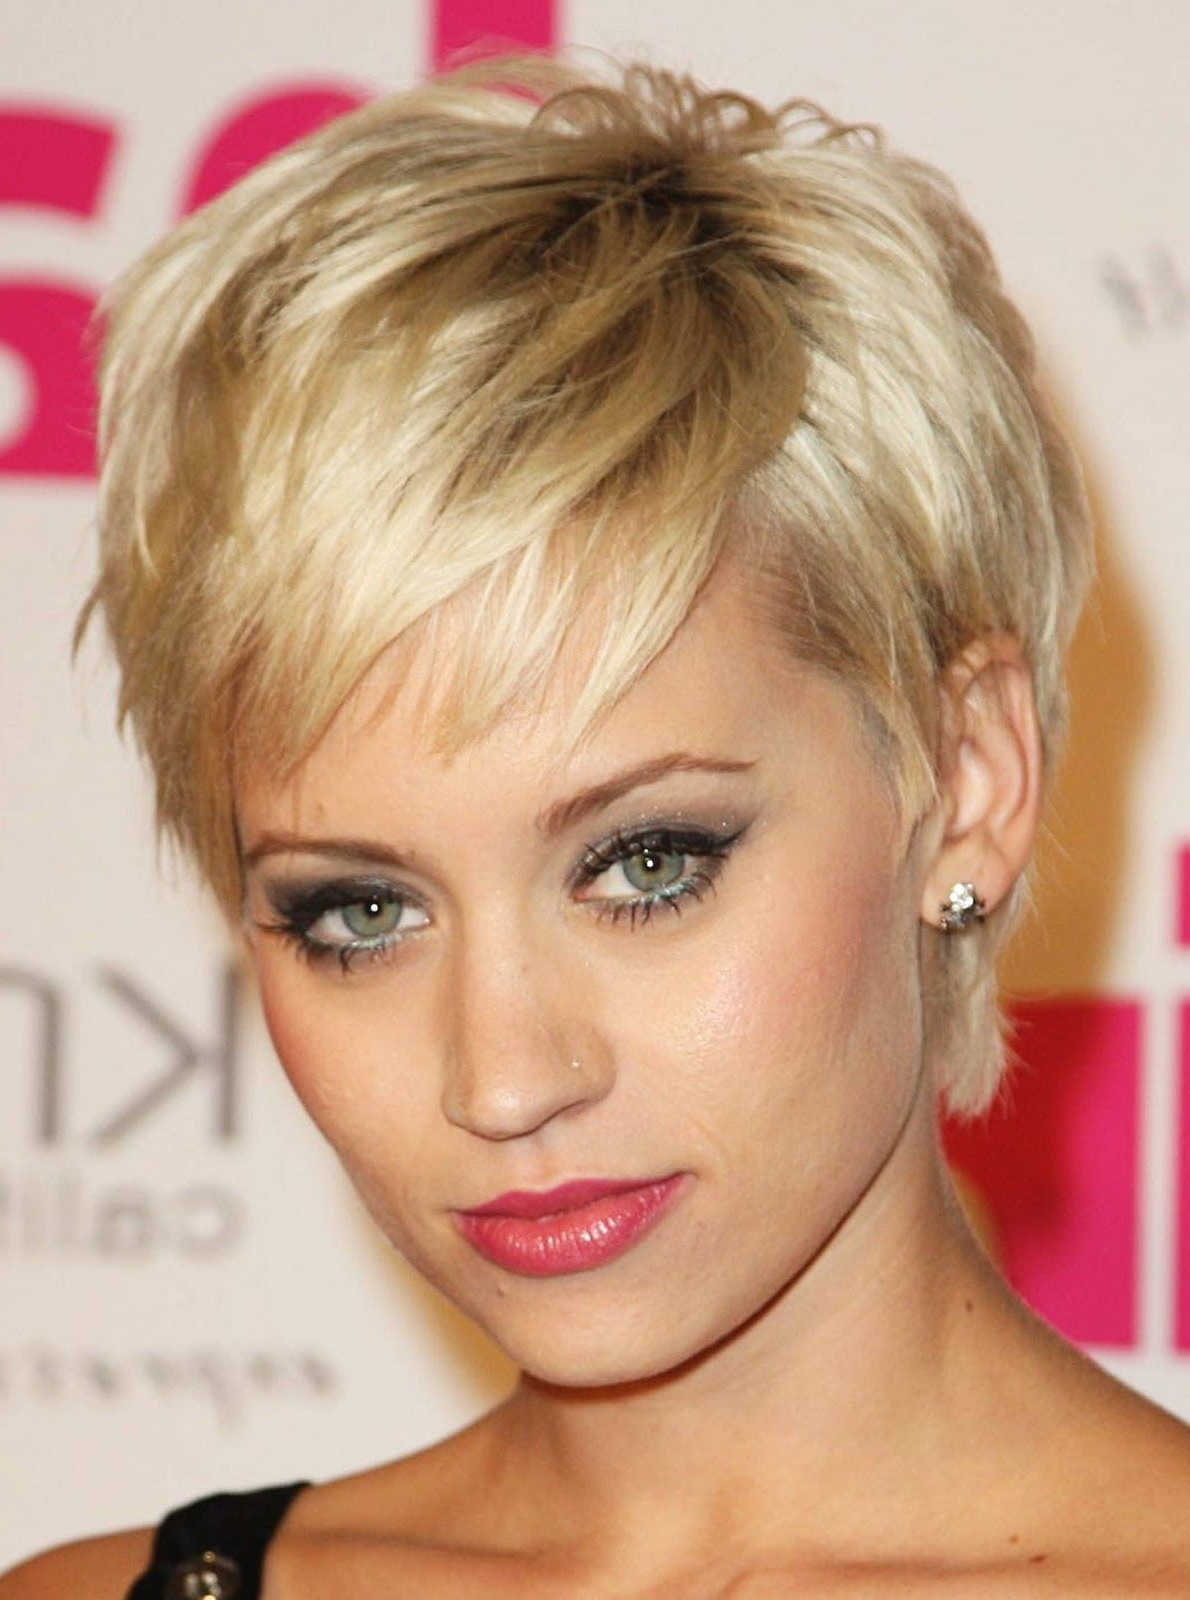 Easy Maintenance Haircuts For Women   Short Hairstyles For Women For Low Maintenance Short Haircuts For Thick Hair (View 7 of 25)